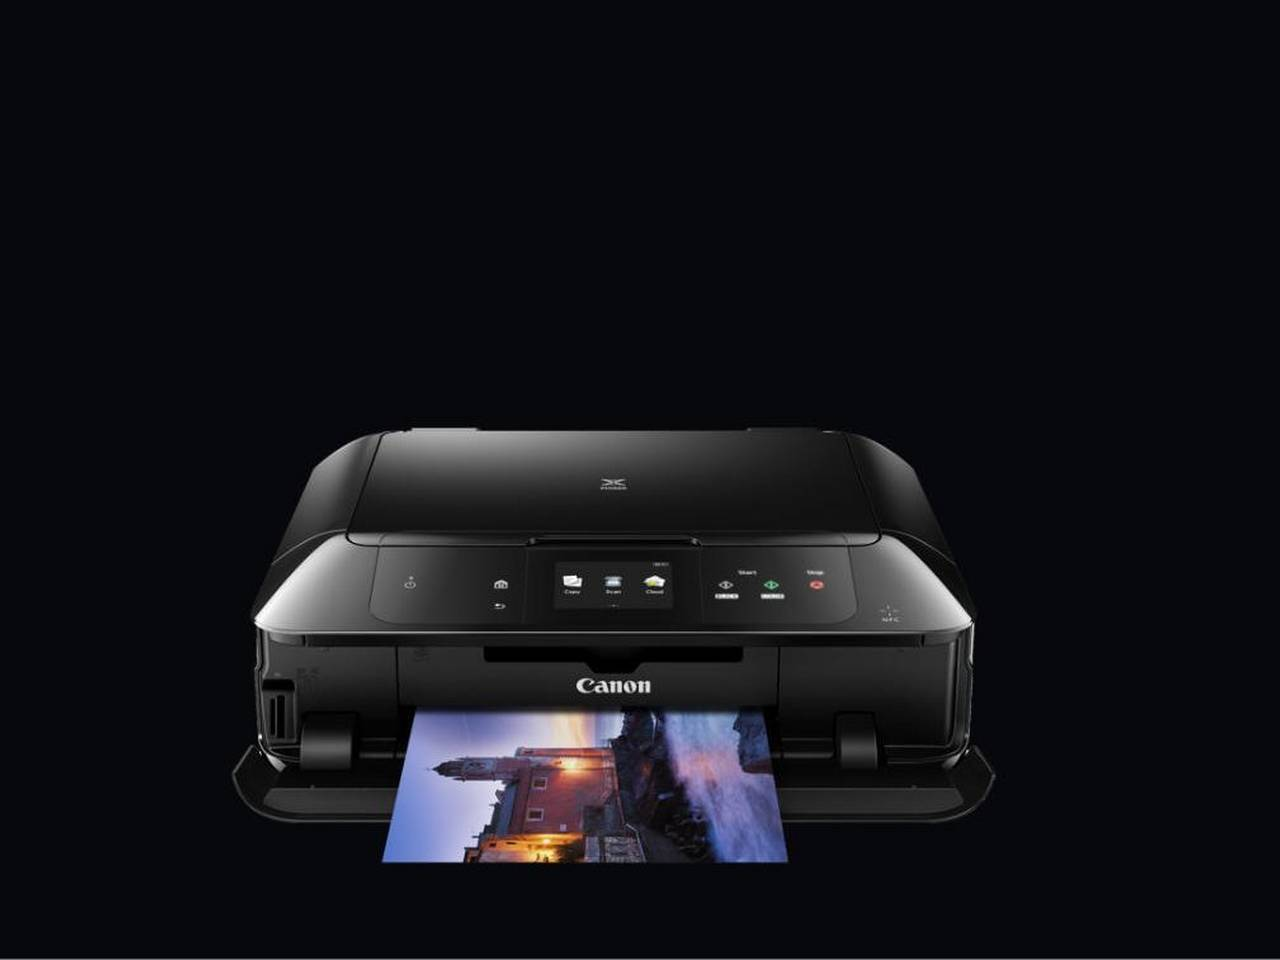 Pixma Inkjet Printers Canon Uk Printer G4010 Print Scan Copy Fax Wifi Do You Need Help Selecting A